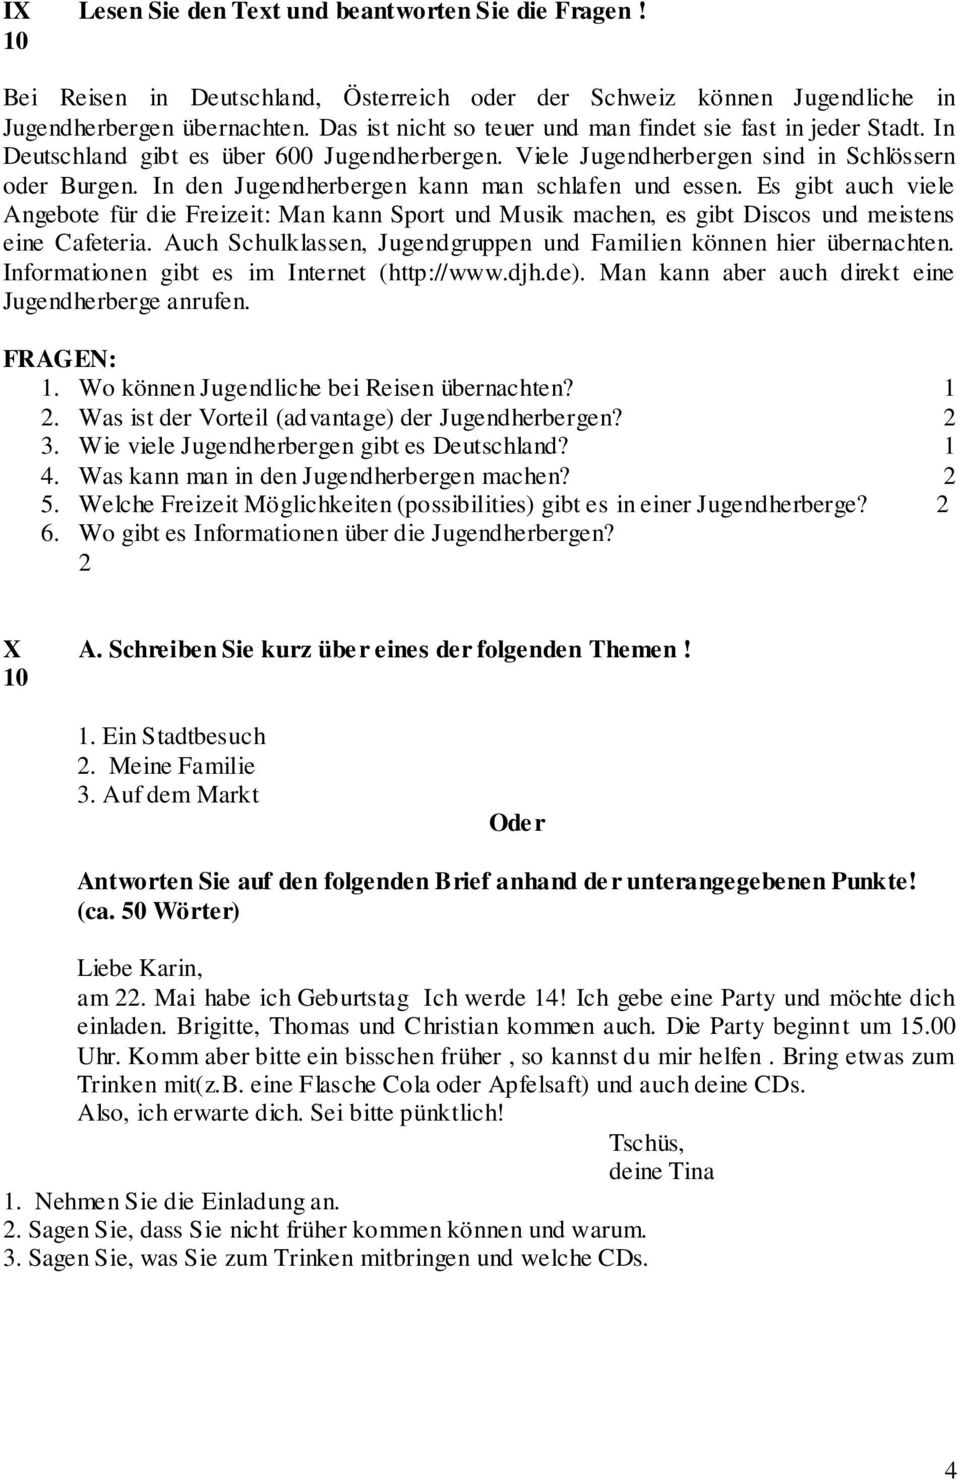 You get this paper through cbse.biz. Sample Question Paper -II ...